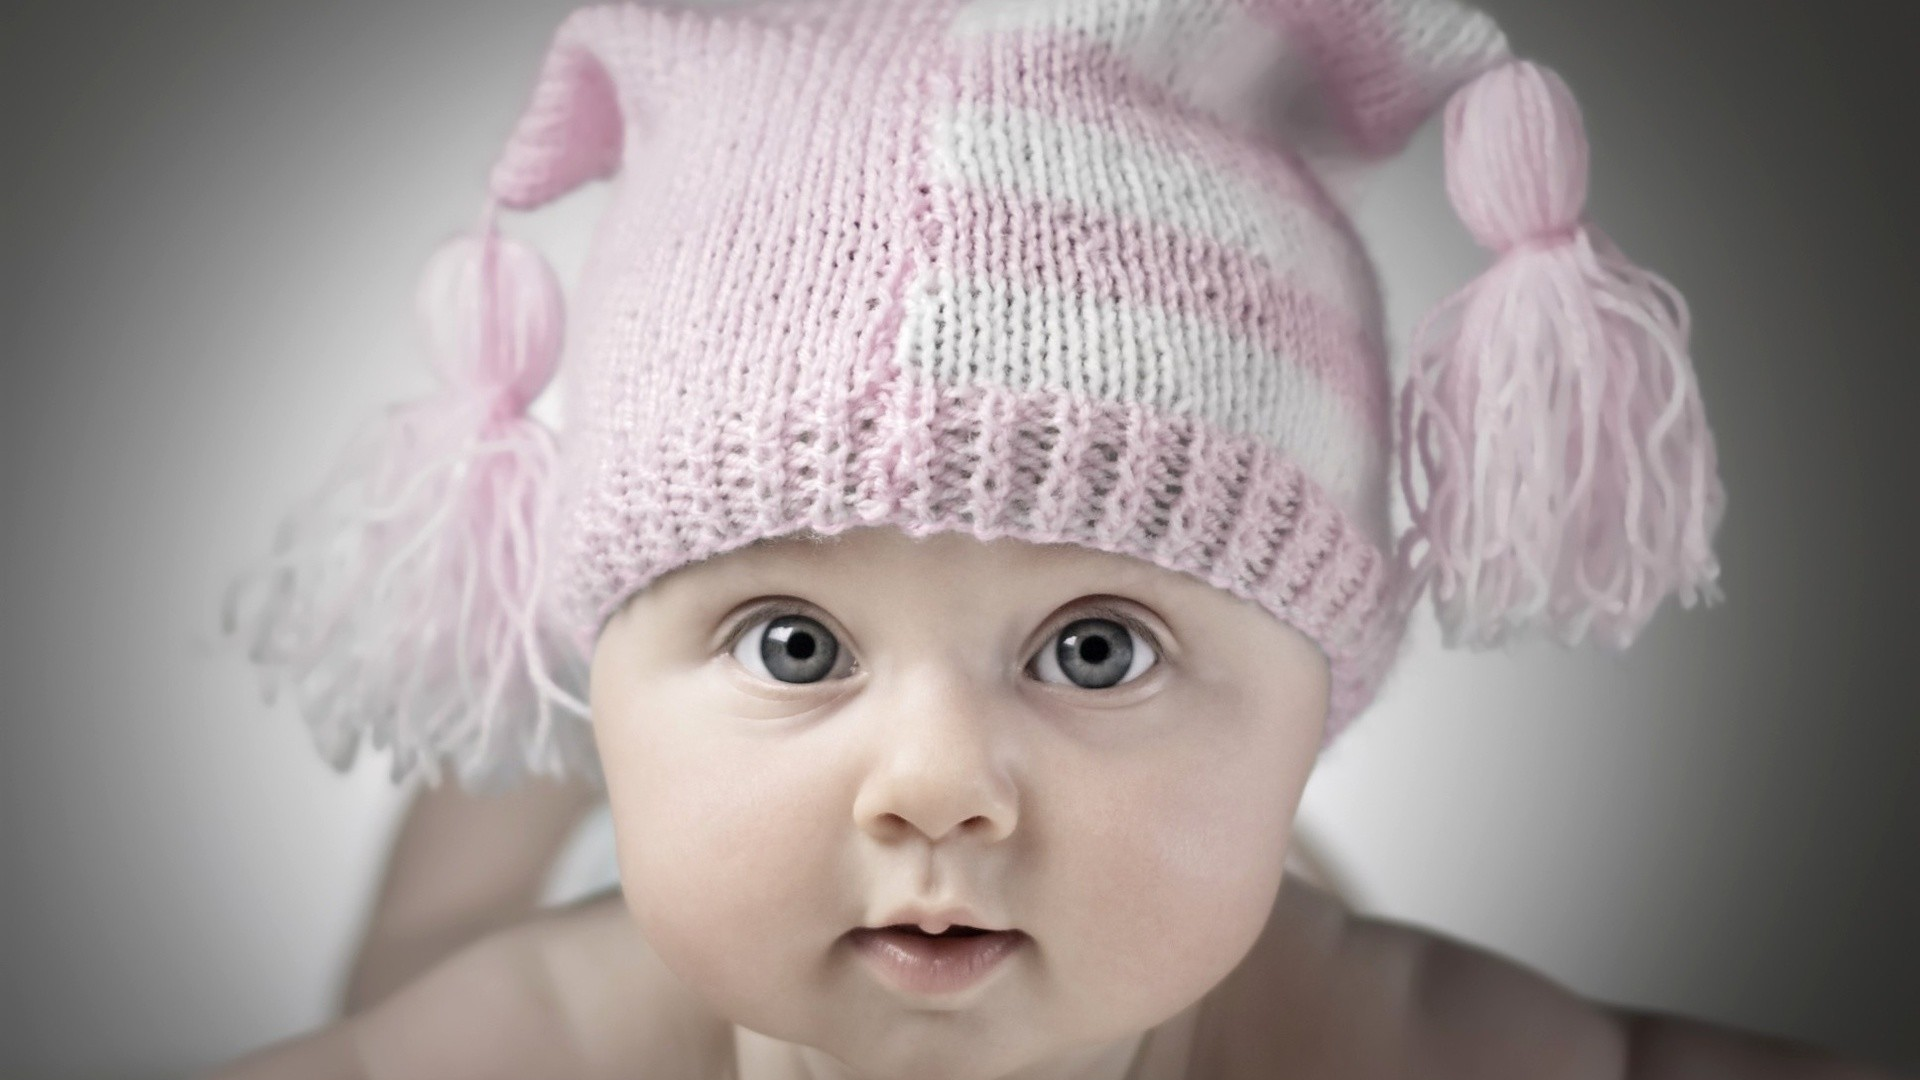 Babies Wallpapers And Screensavers 61 Images